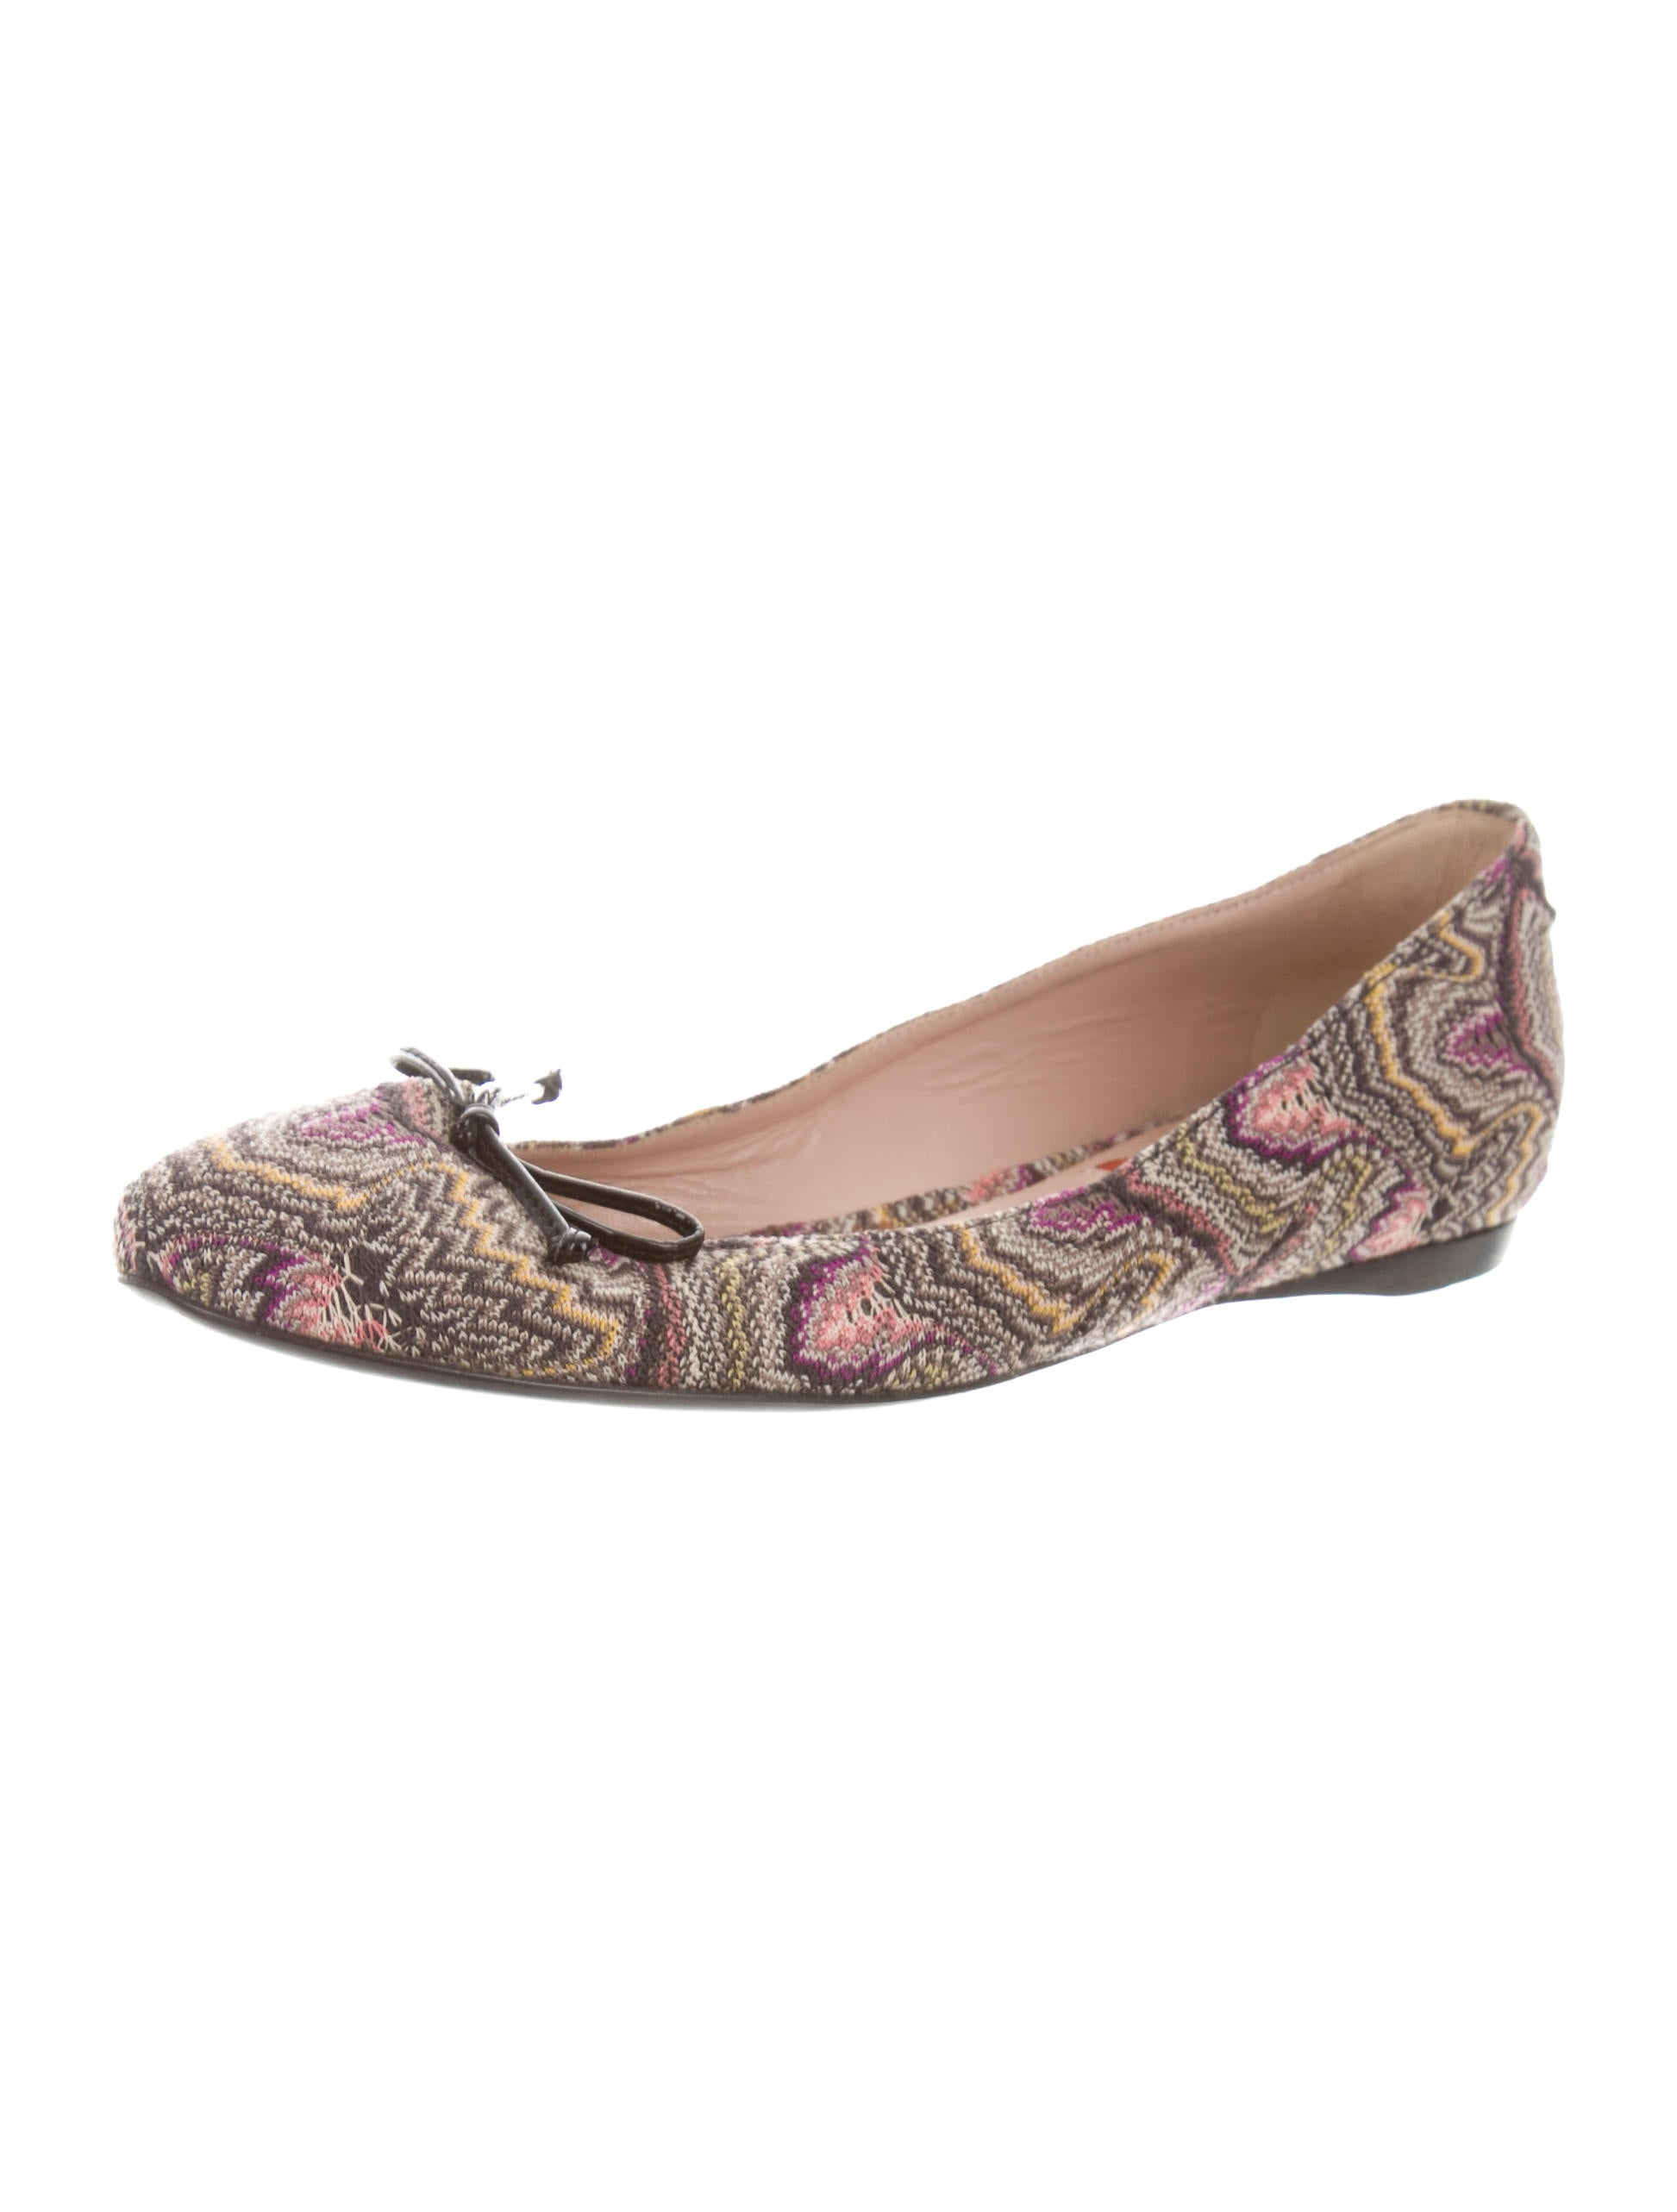 Missoni Woven Chevron Flats free shipping hot sale outlet supply comfortable online supply cheap price 1zqQSpT